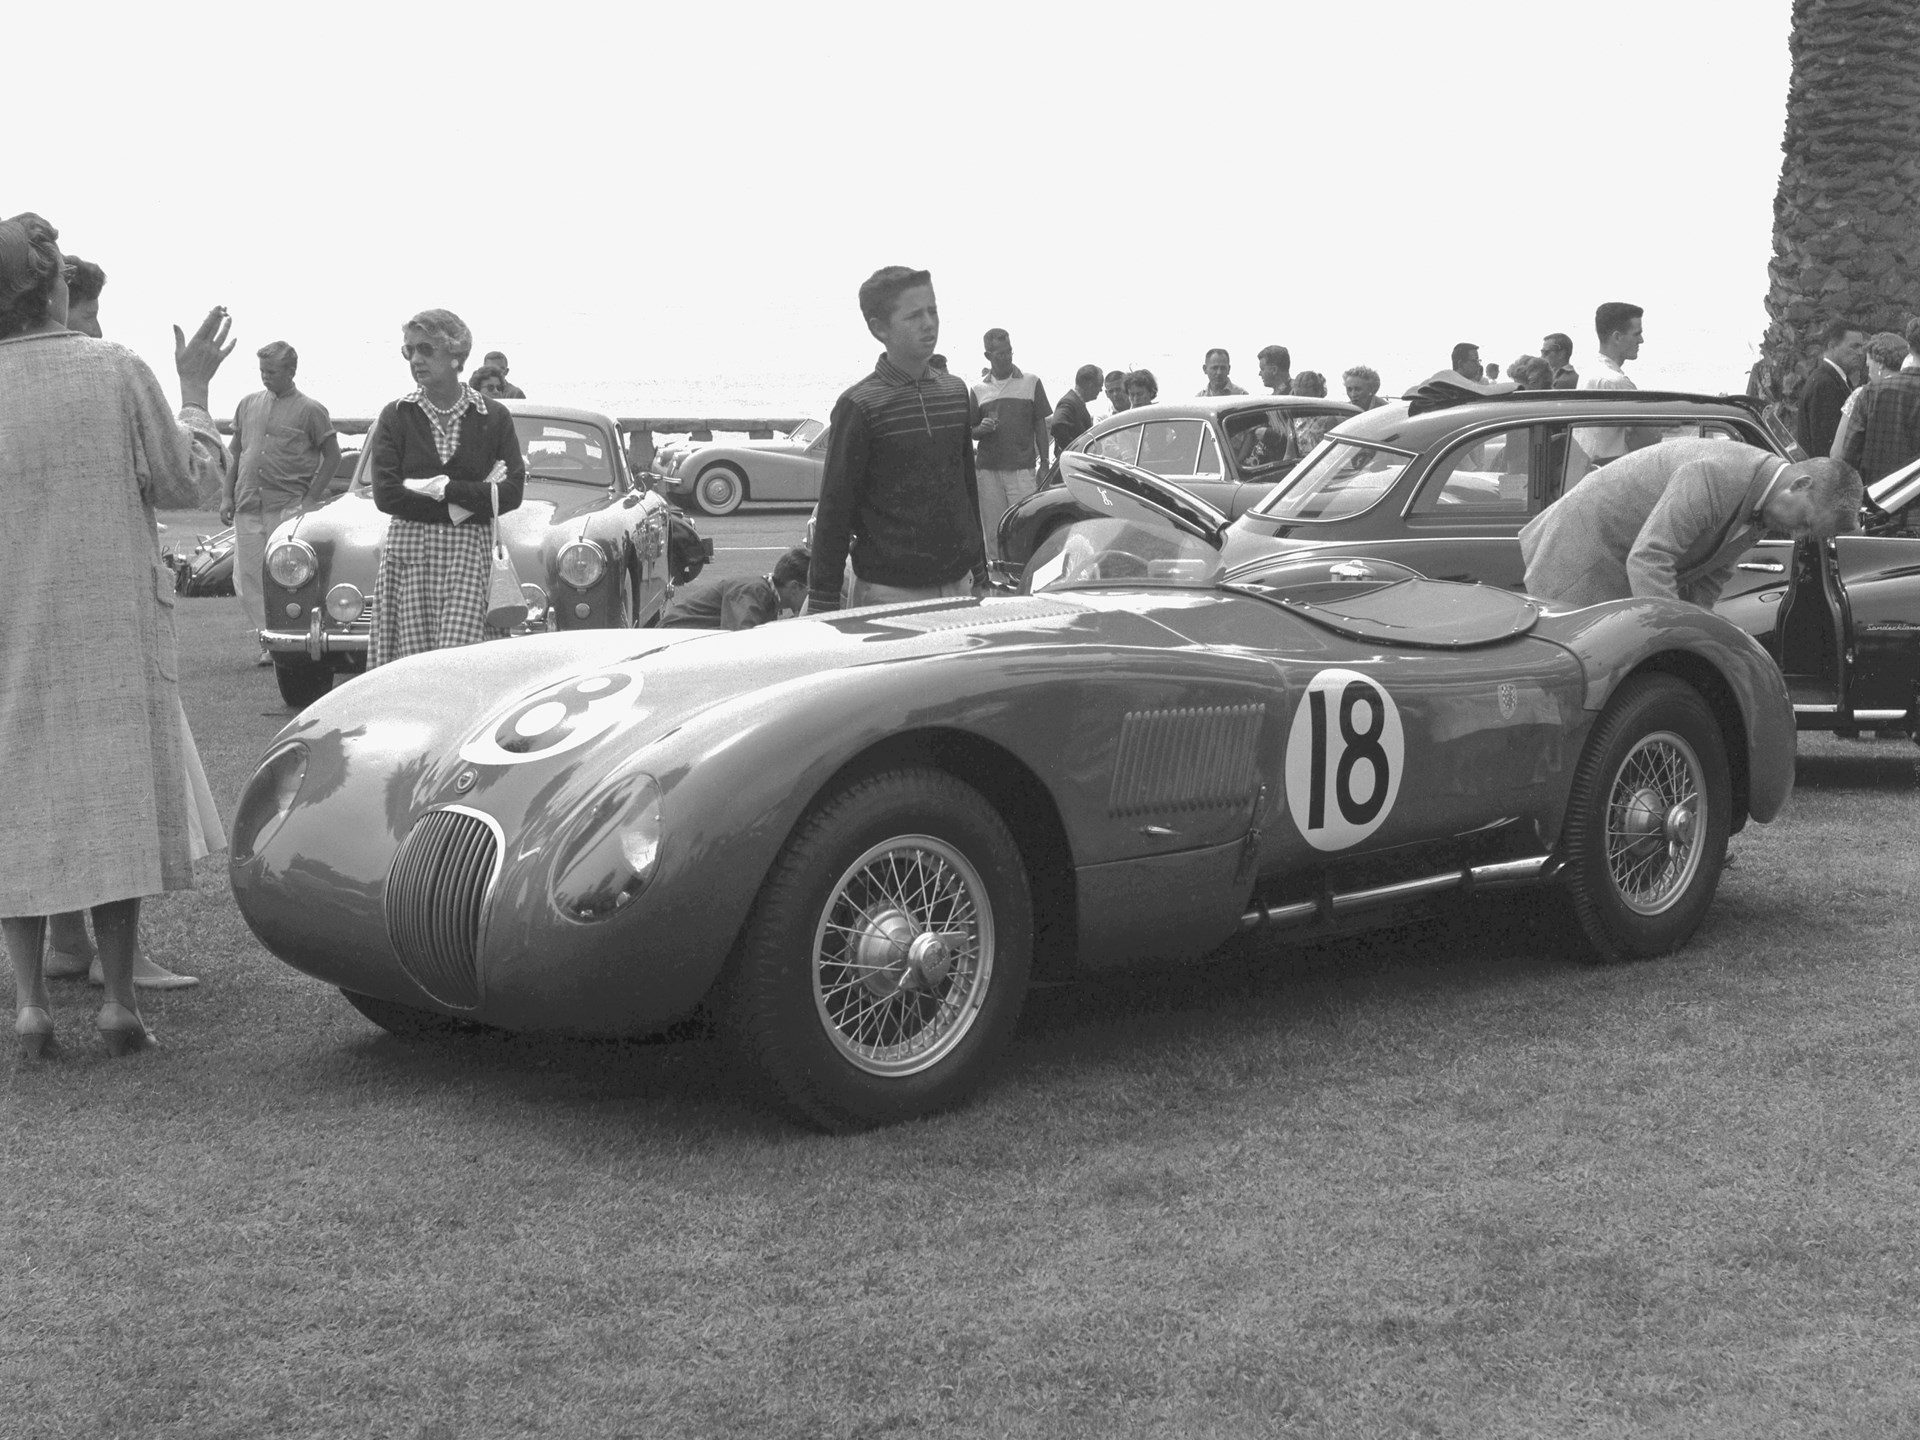 XKC 007 takes a break from racing at the Santa Barbara Concours d'Elegance in 1956.